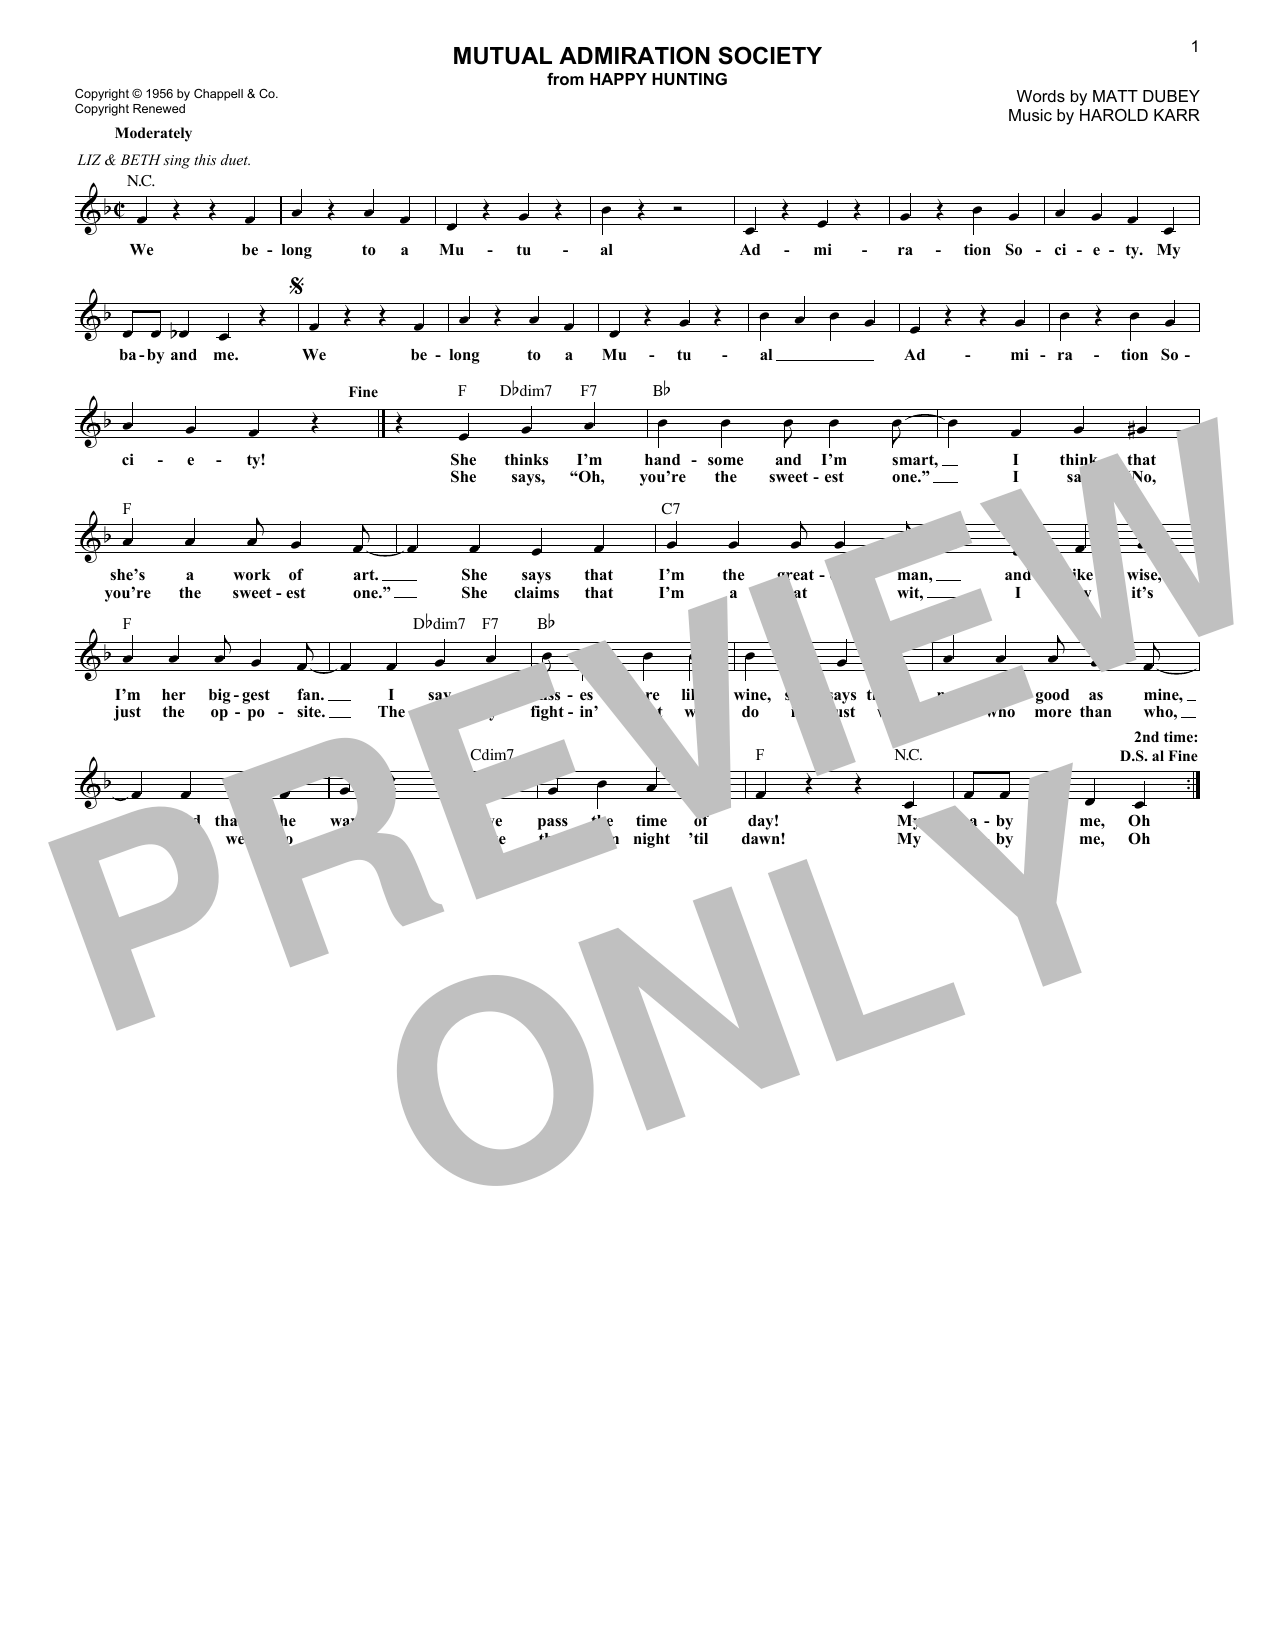 Harold Karr Mutual Admiration Society (from Happy Hunting) sheet music notes and chords